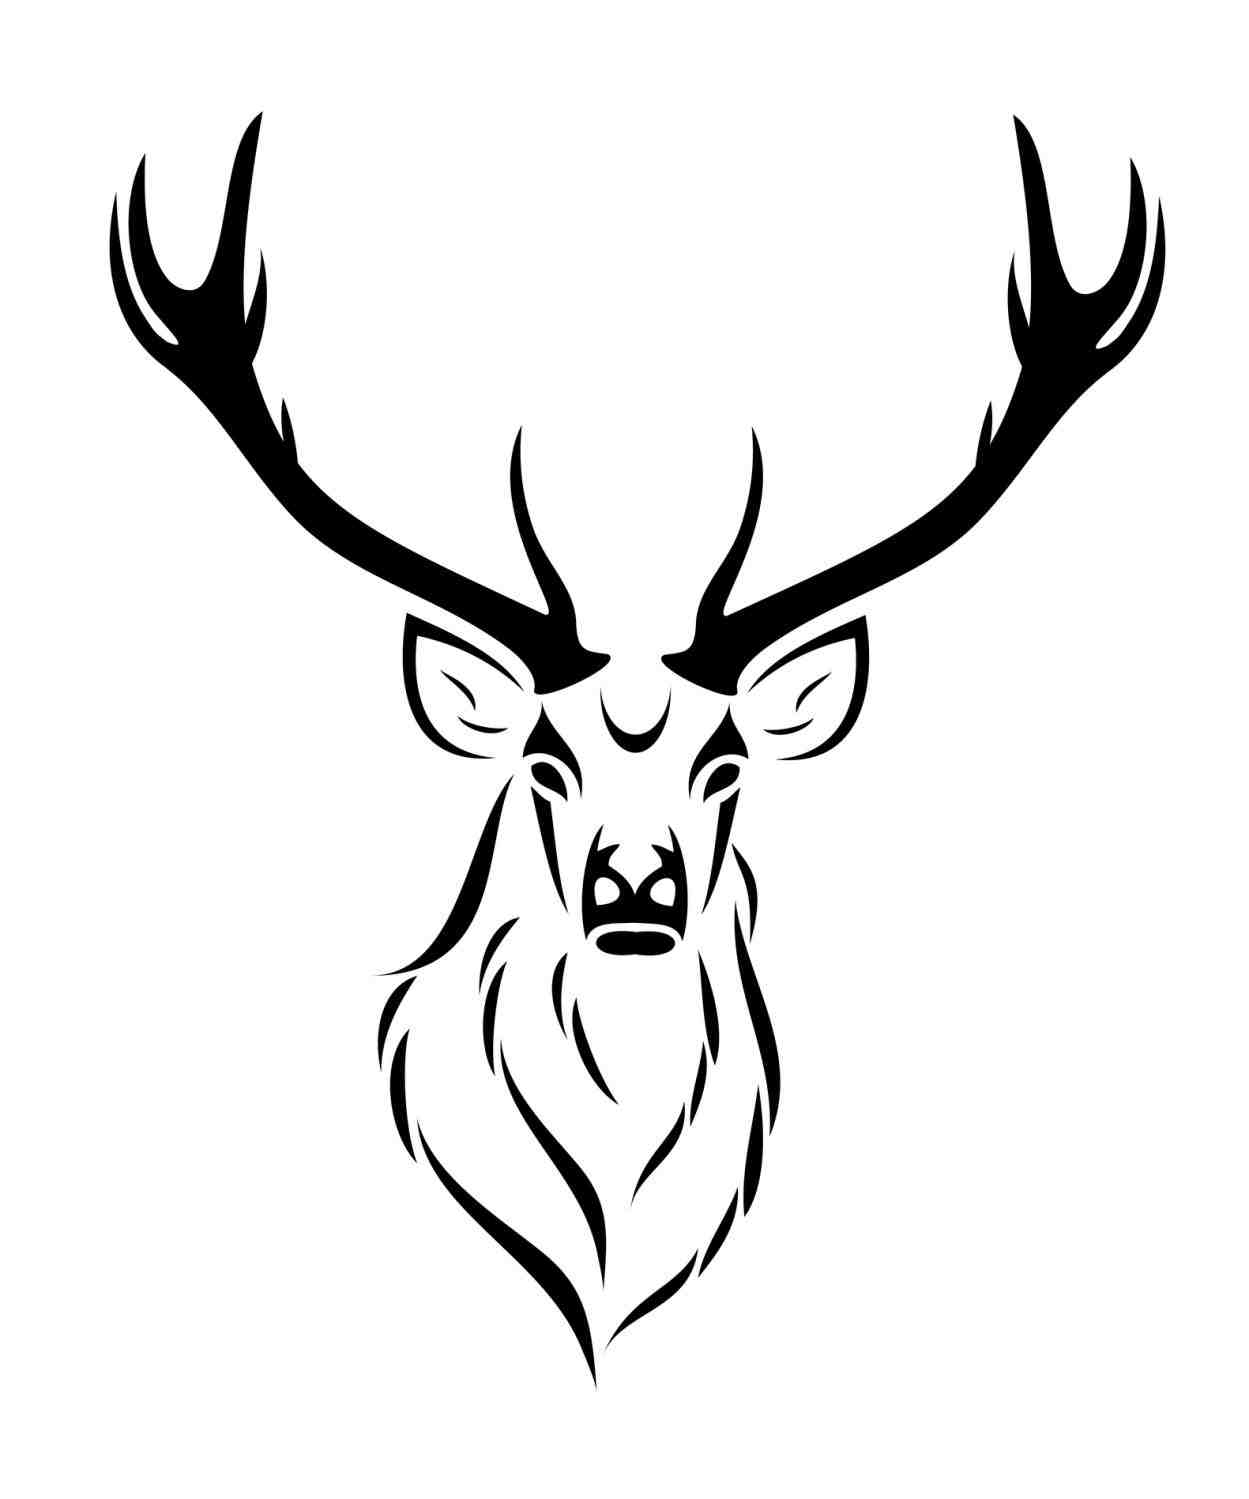 1249x1499 Deer Antler Drawing Deer Antler Drawing Designs